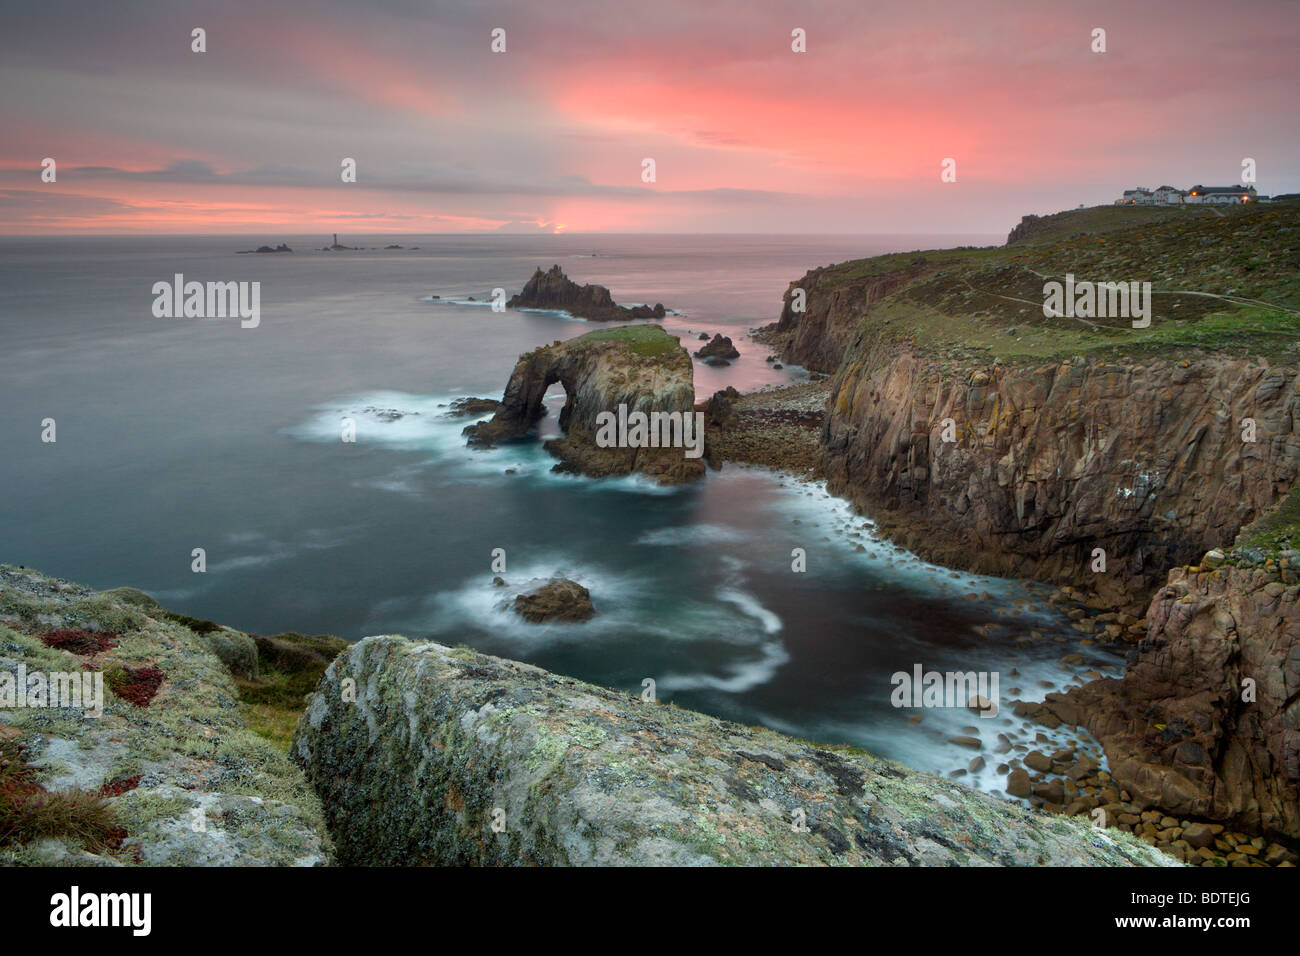 Clifftops of Land's End in Cornwall, England. Spring (May) 2006 - Stock Image